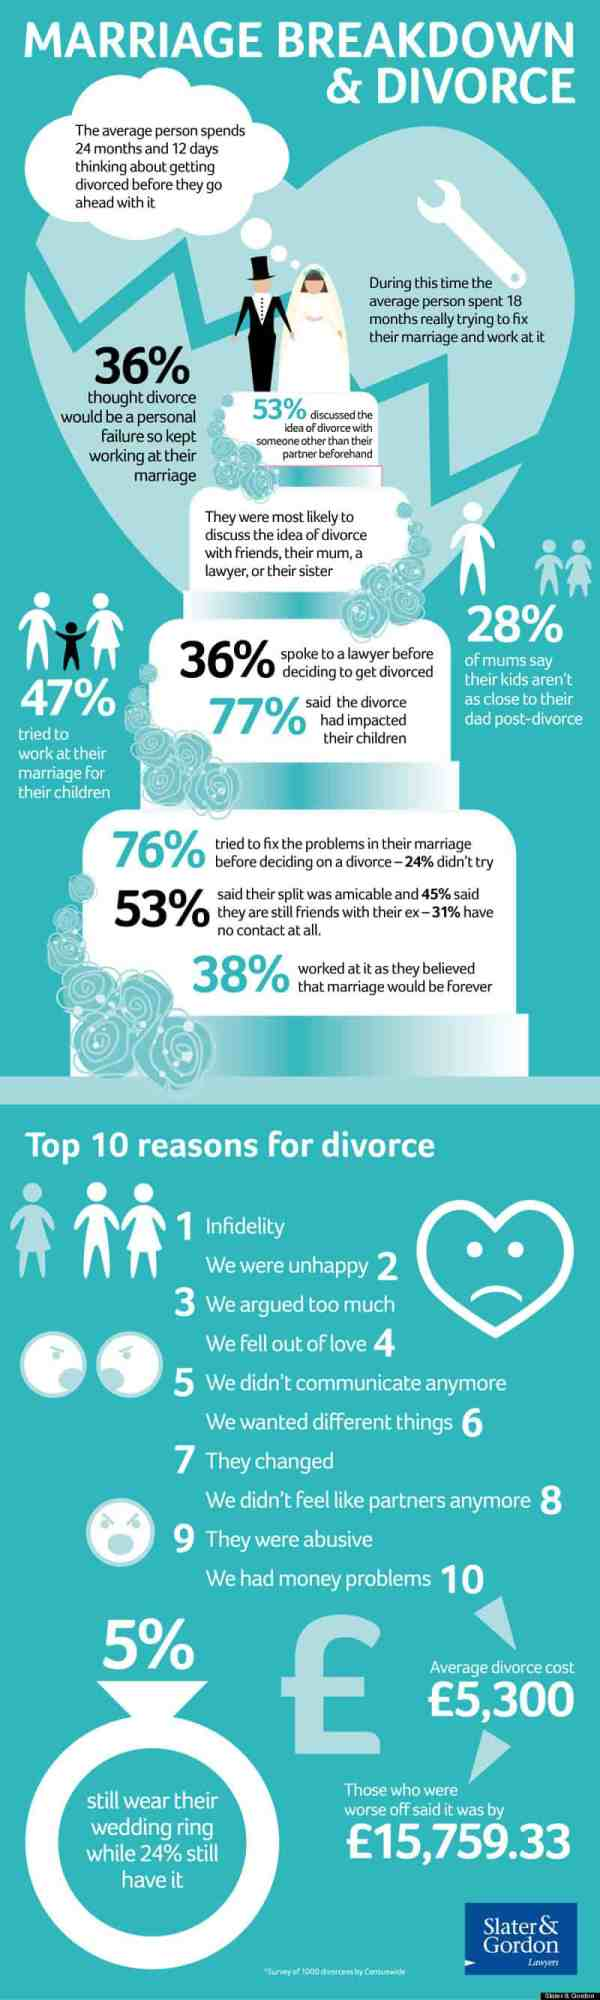 Marriage Breakdown & Divorce